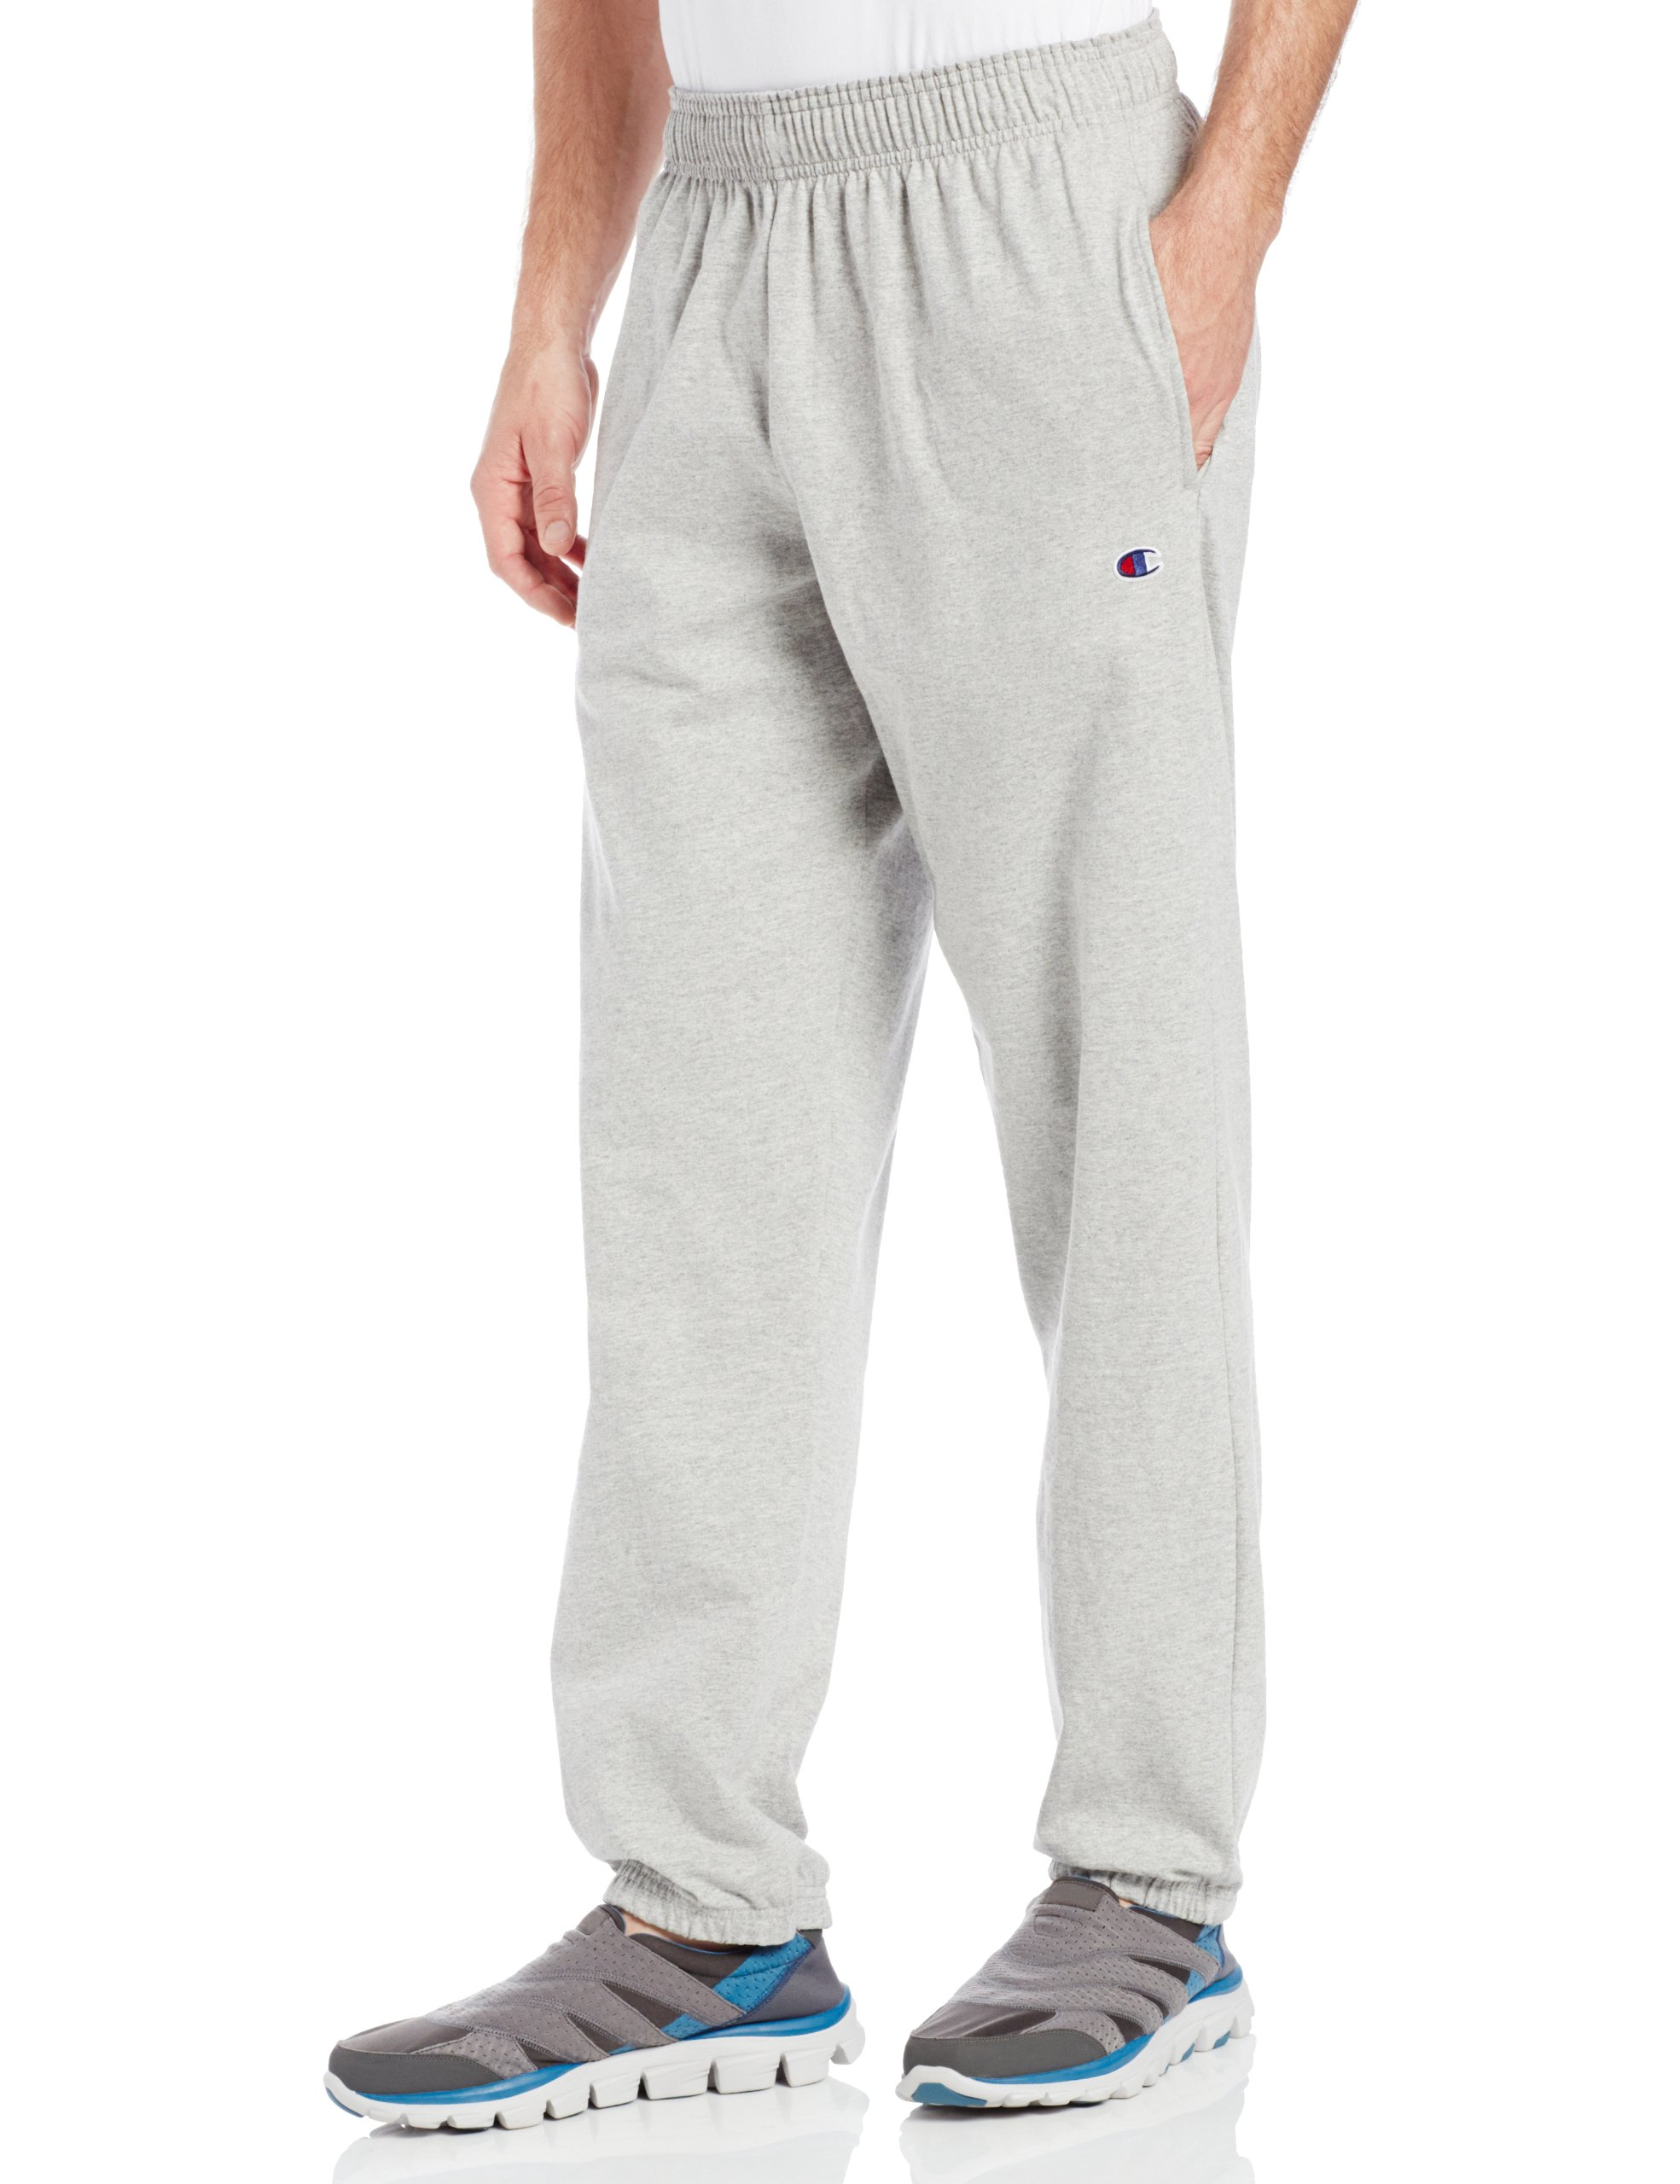 Champion Men's Closed Bottom Light Weight Jersey Sweatpant, Oxford Grey, XX-Large by Champion